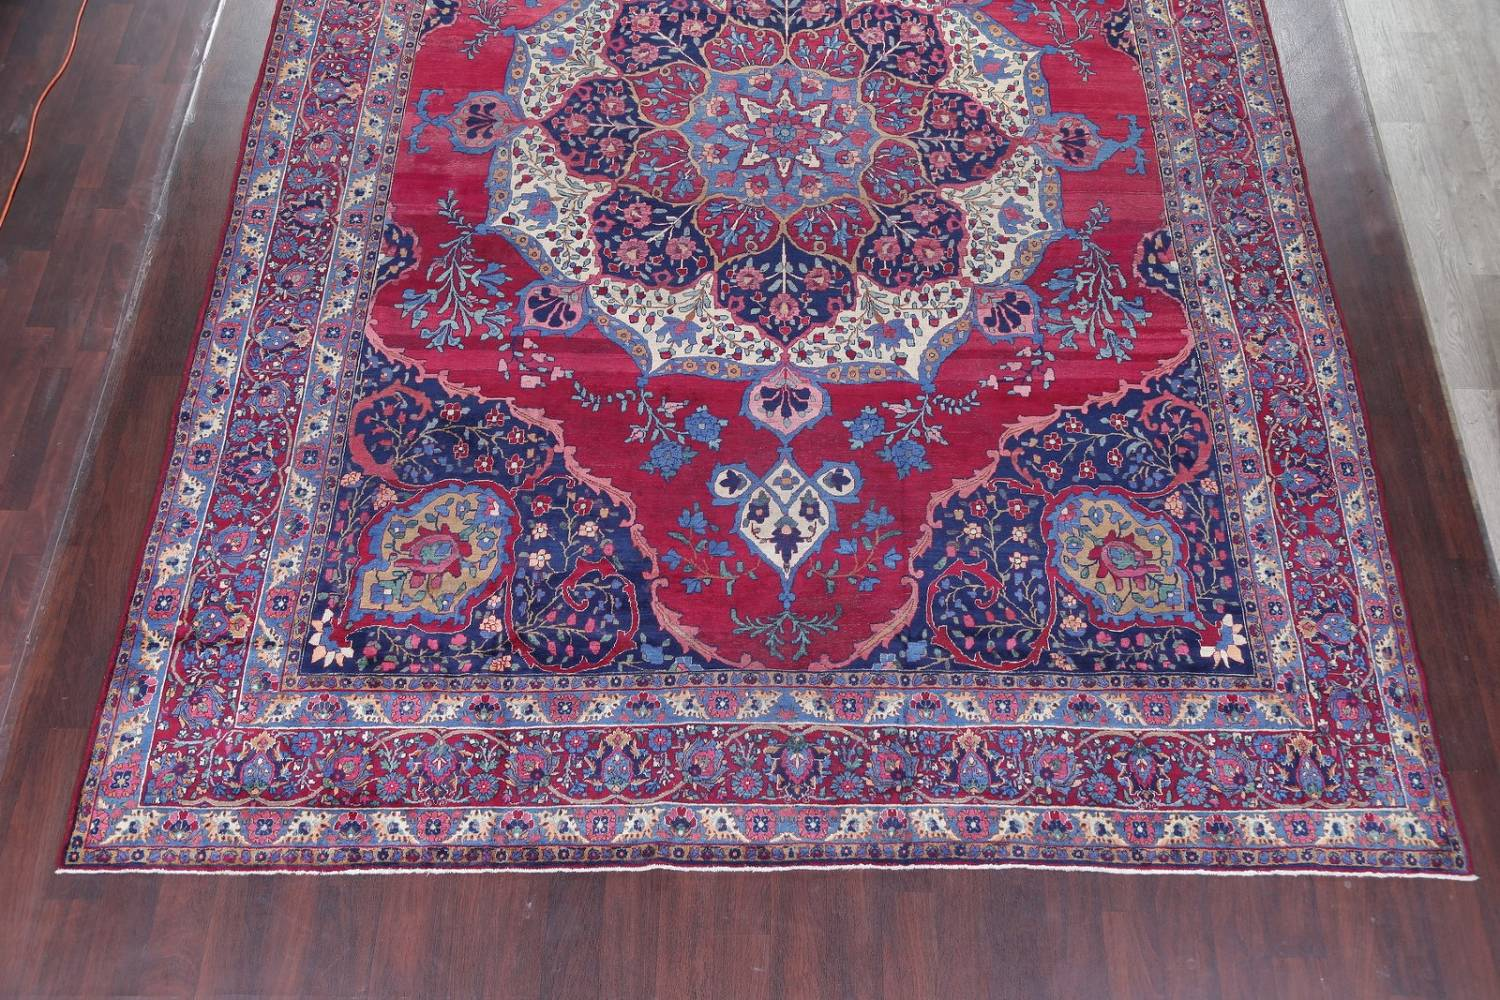 Pre-1900 Vegetable Dye Yazd Antique Persian Hand-Knotted  11x15 Wool Area Rug image 5